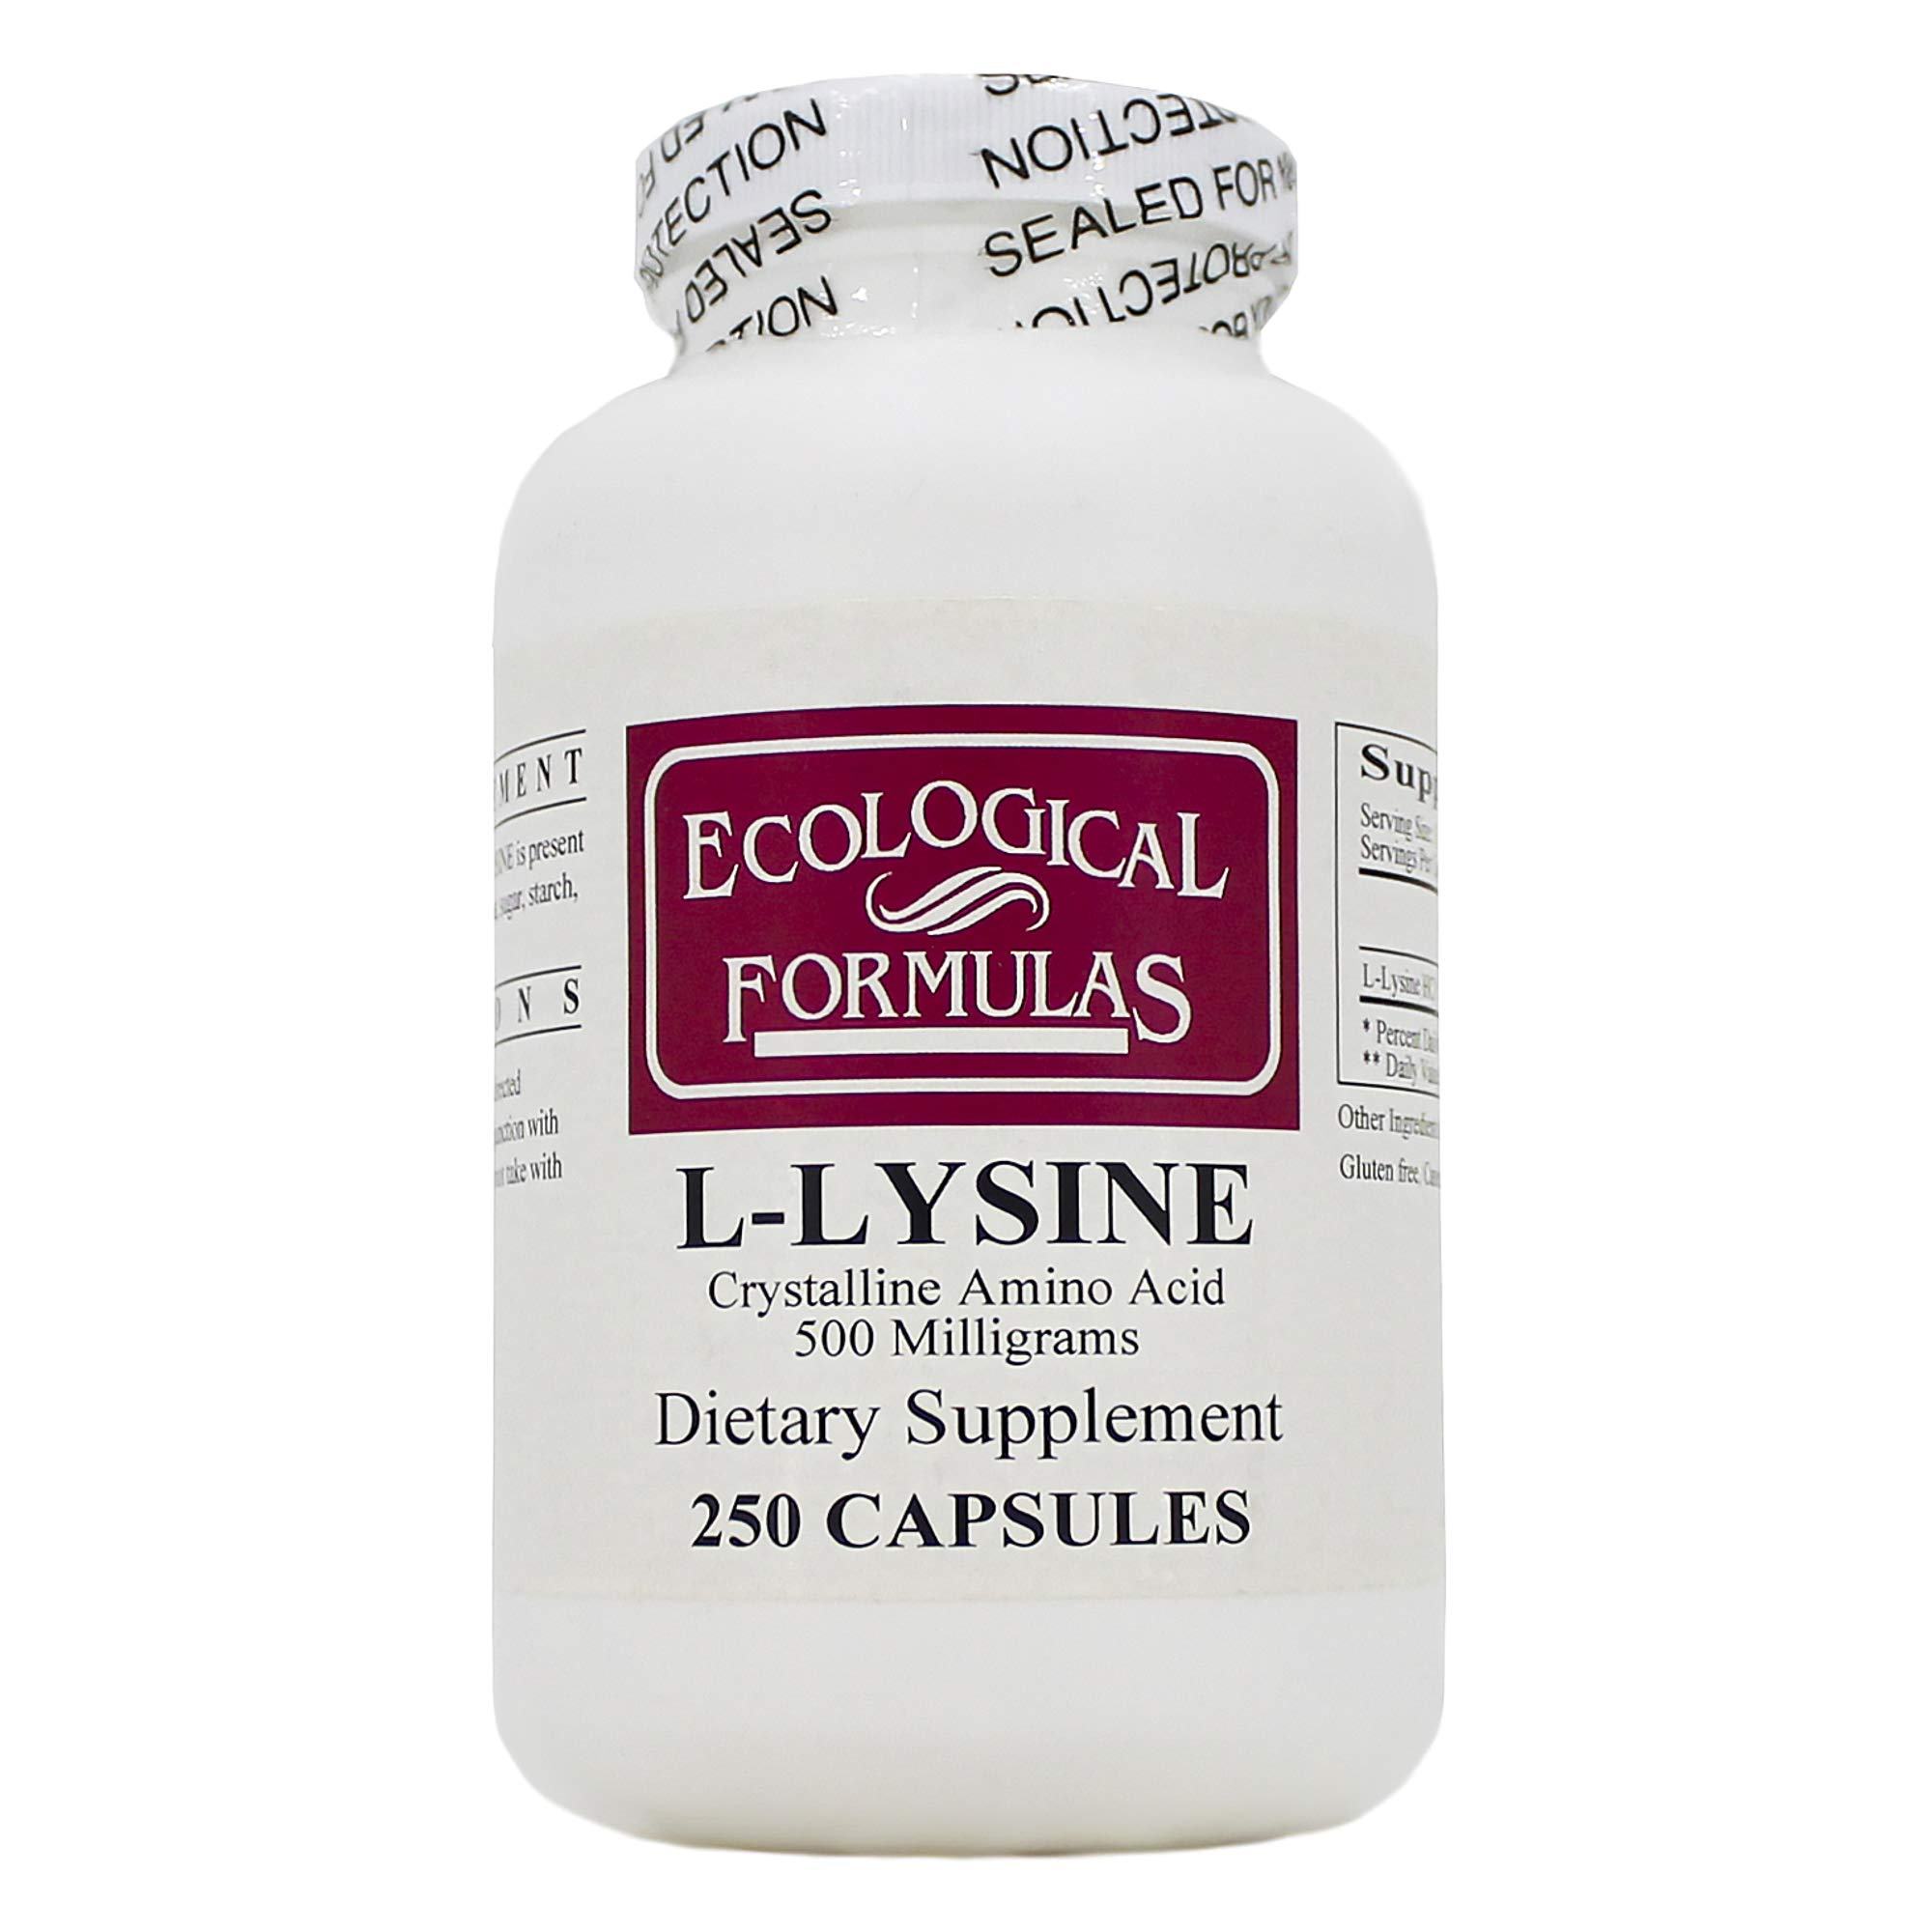 L-Lysine 500mg 250 Capsules - Pack of 2 by ECOLOGICAL FORMULAS - CARDIOVASCULAR RESEARCH